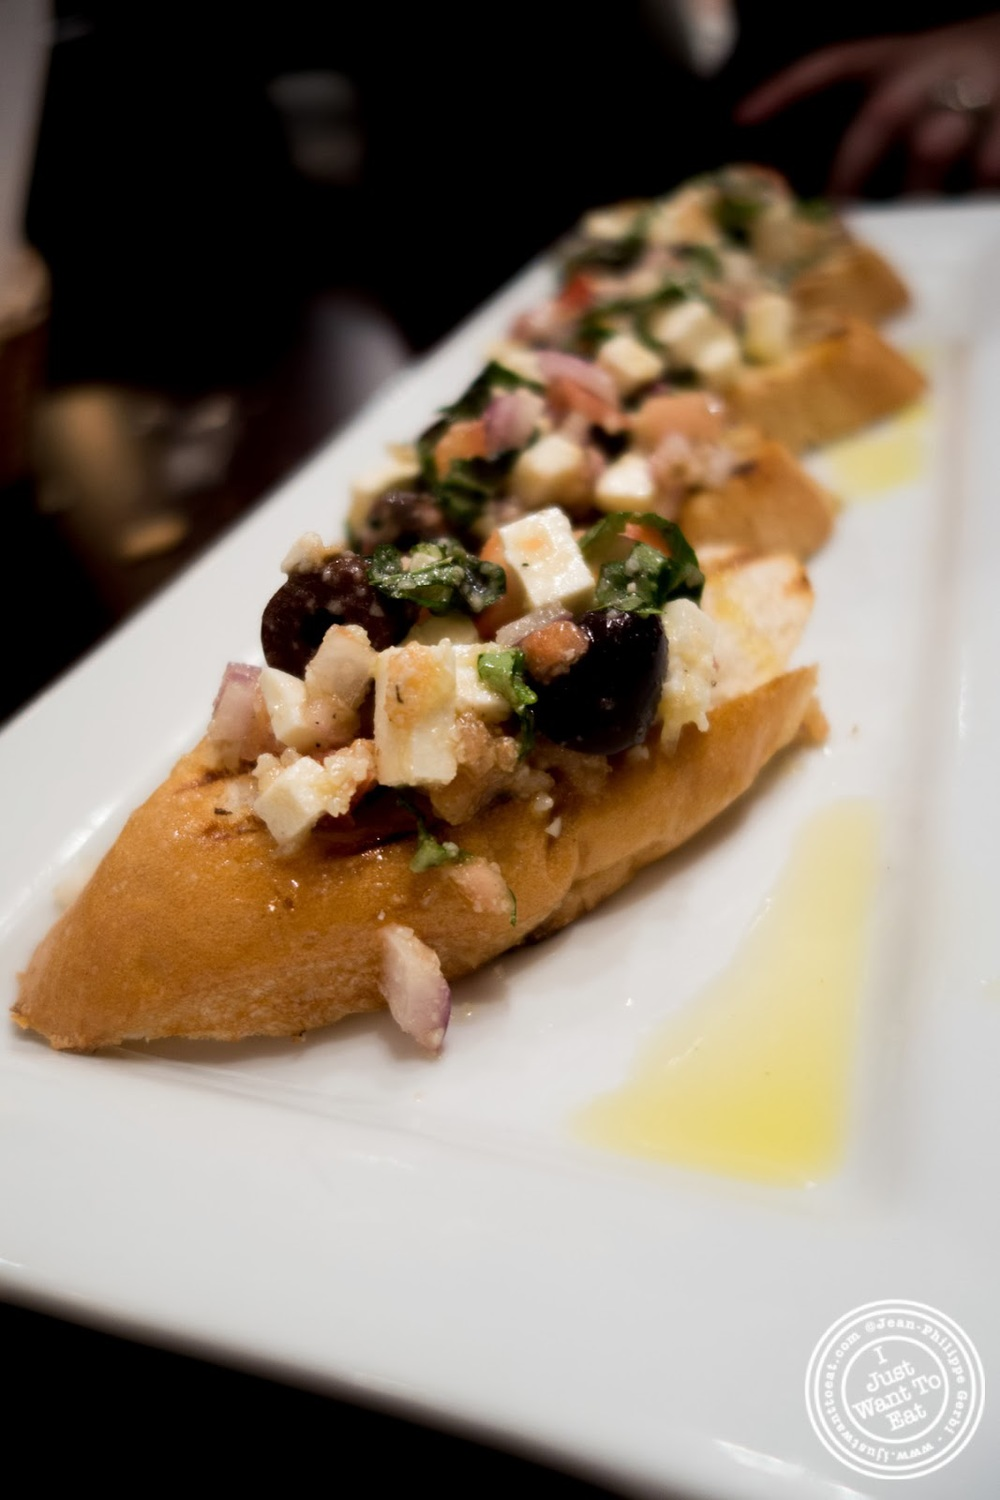 image of caprese bruschetta at The Brick Pizzeria in Hoboken, NJ